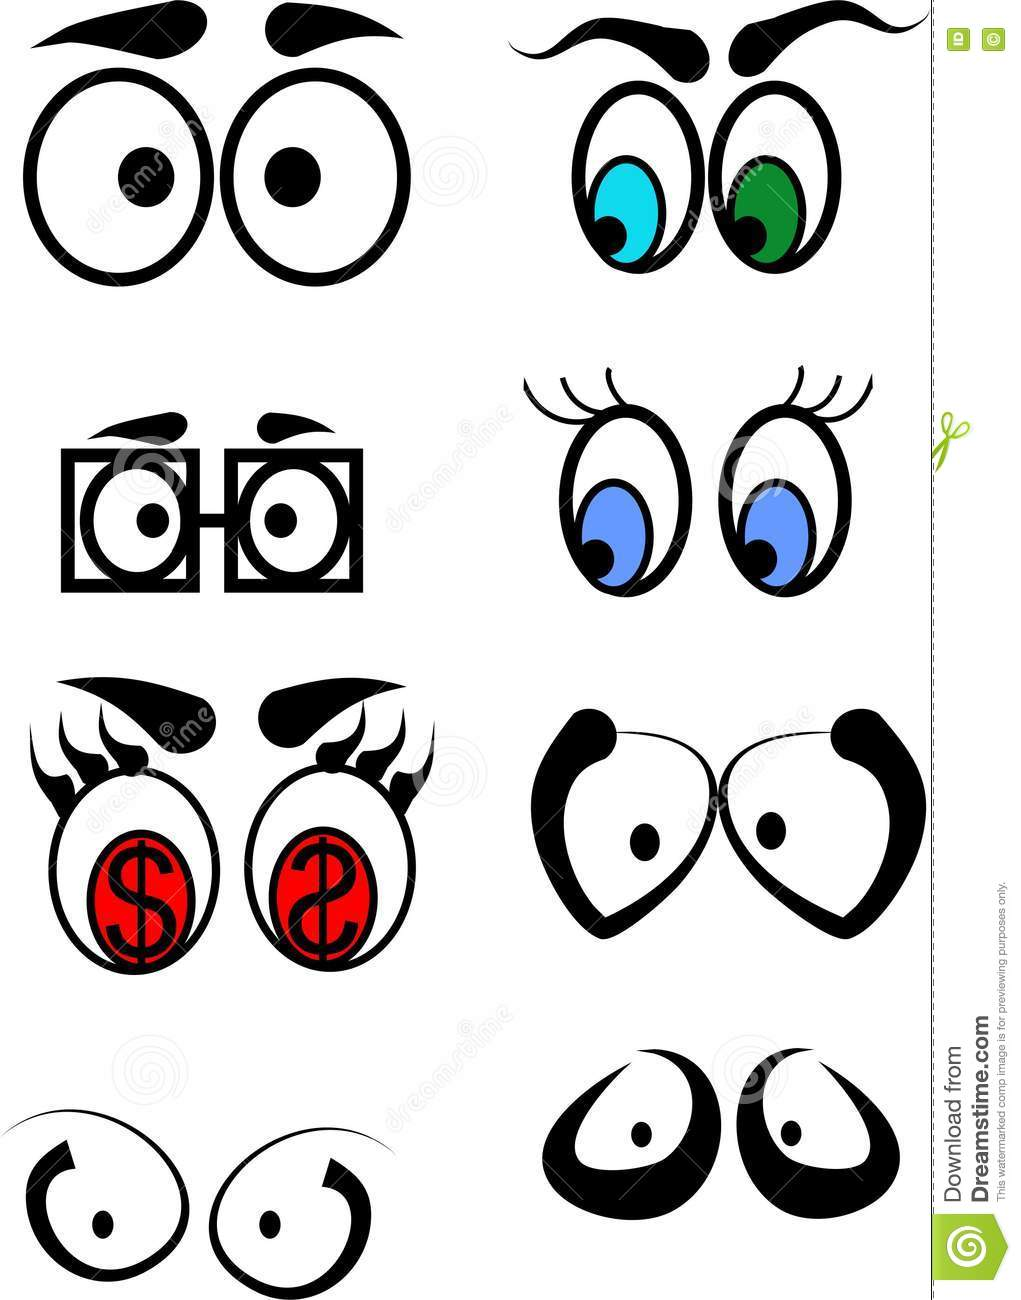 Eyes Of Different Color And Shape Royalty-Free Stock Image